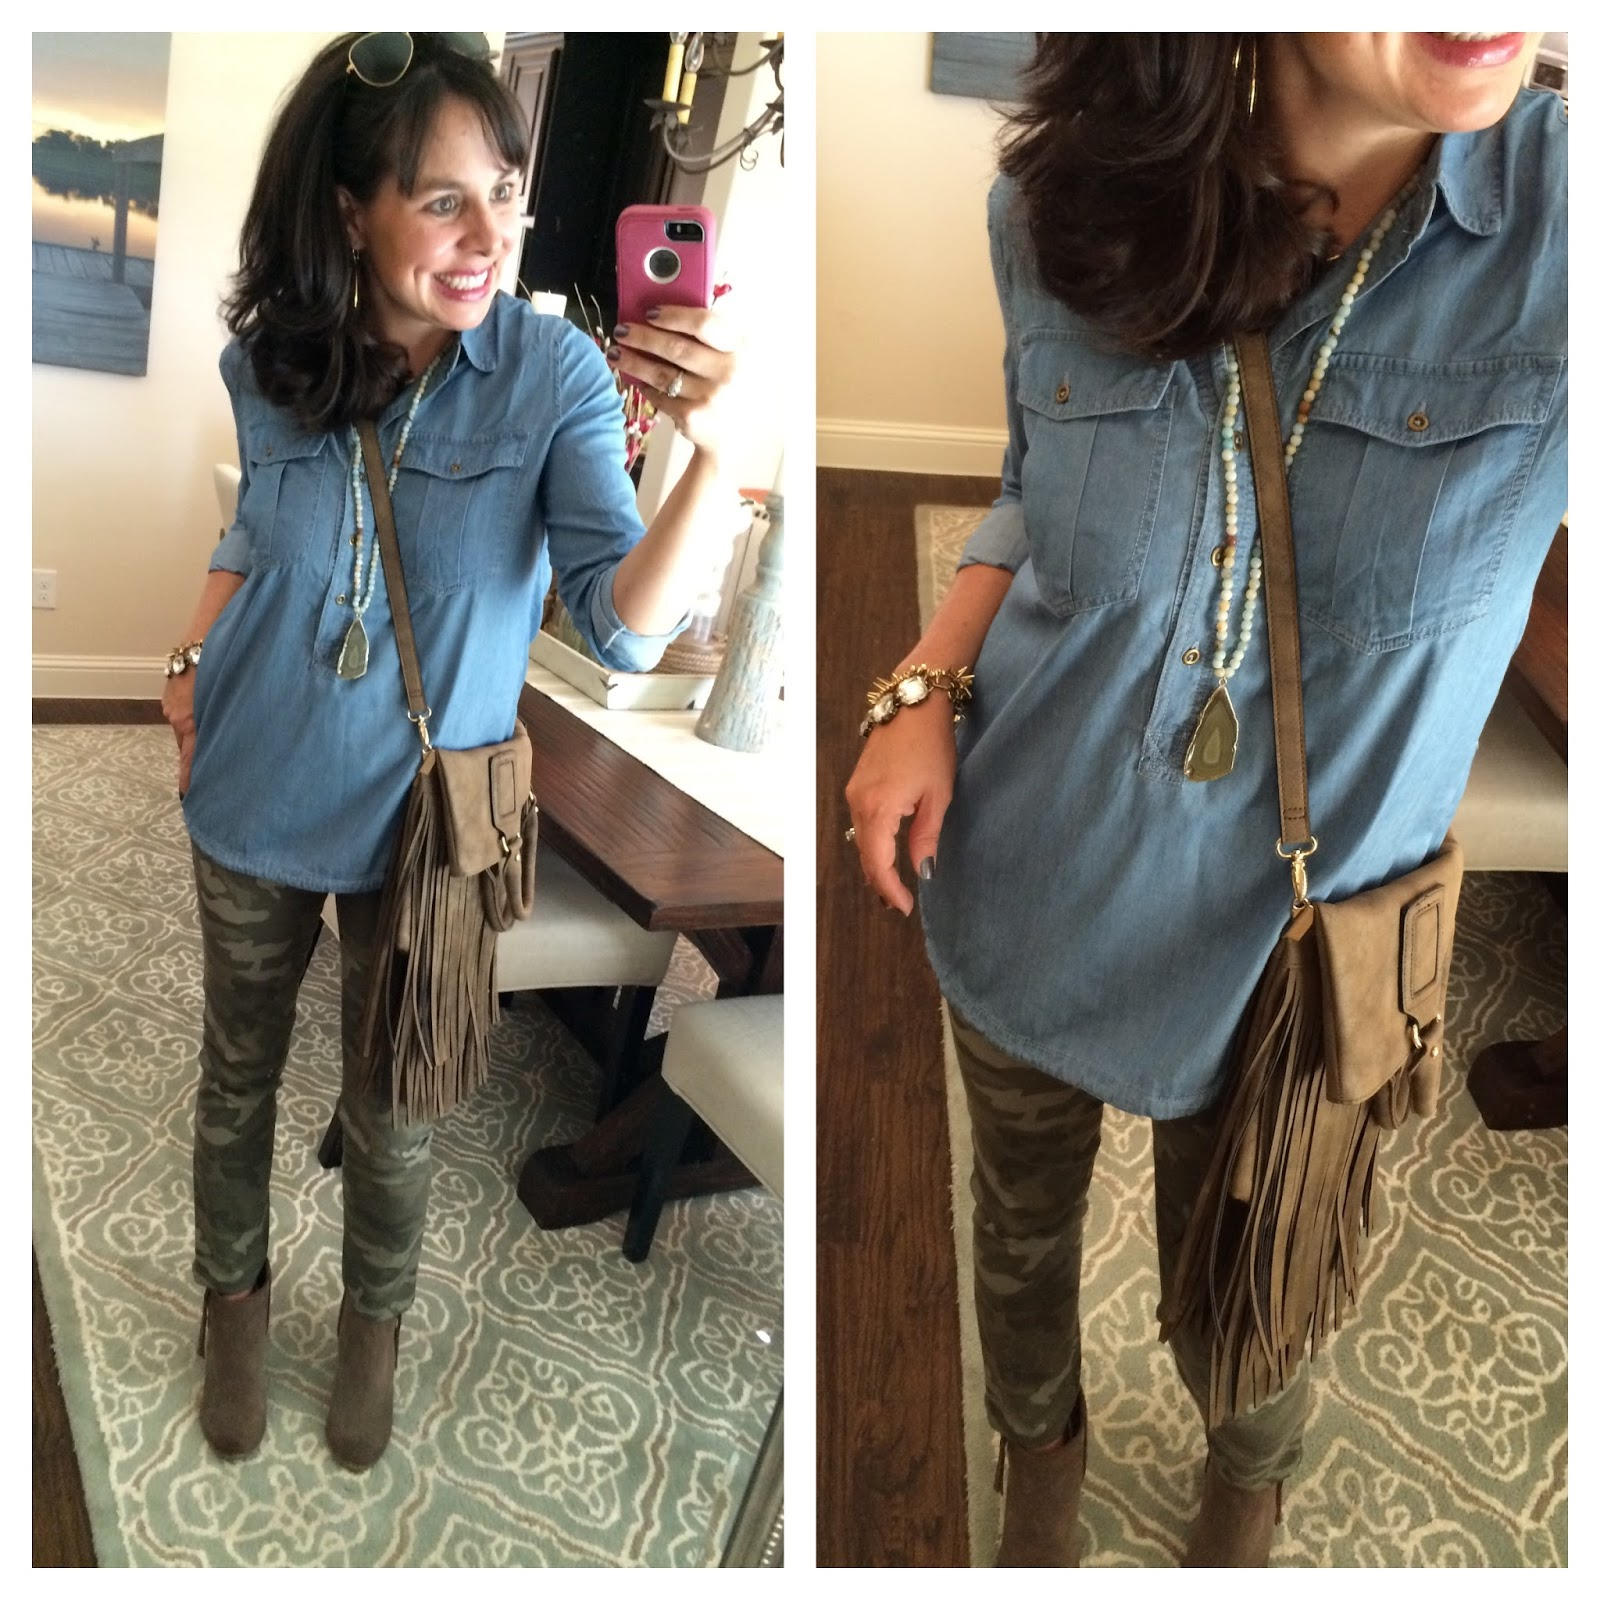 camo love: camo pants styled 3 ways — sheaffer told me to